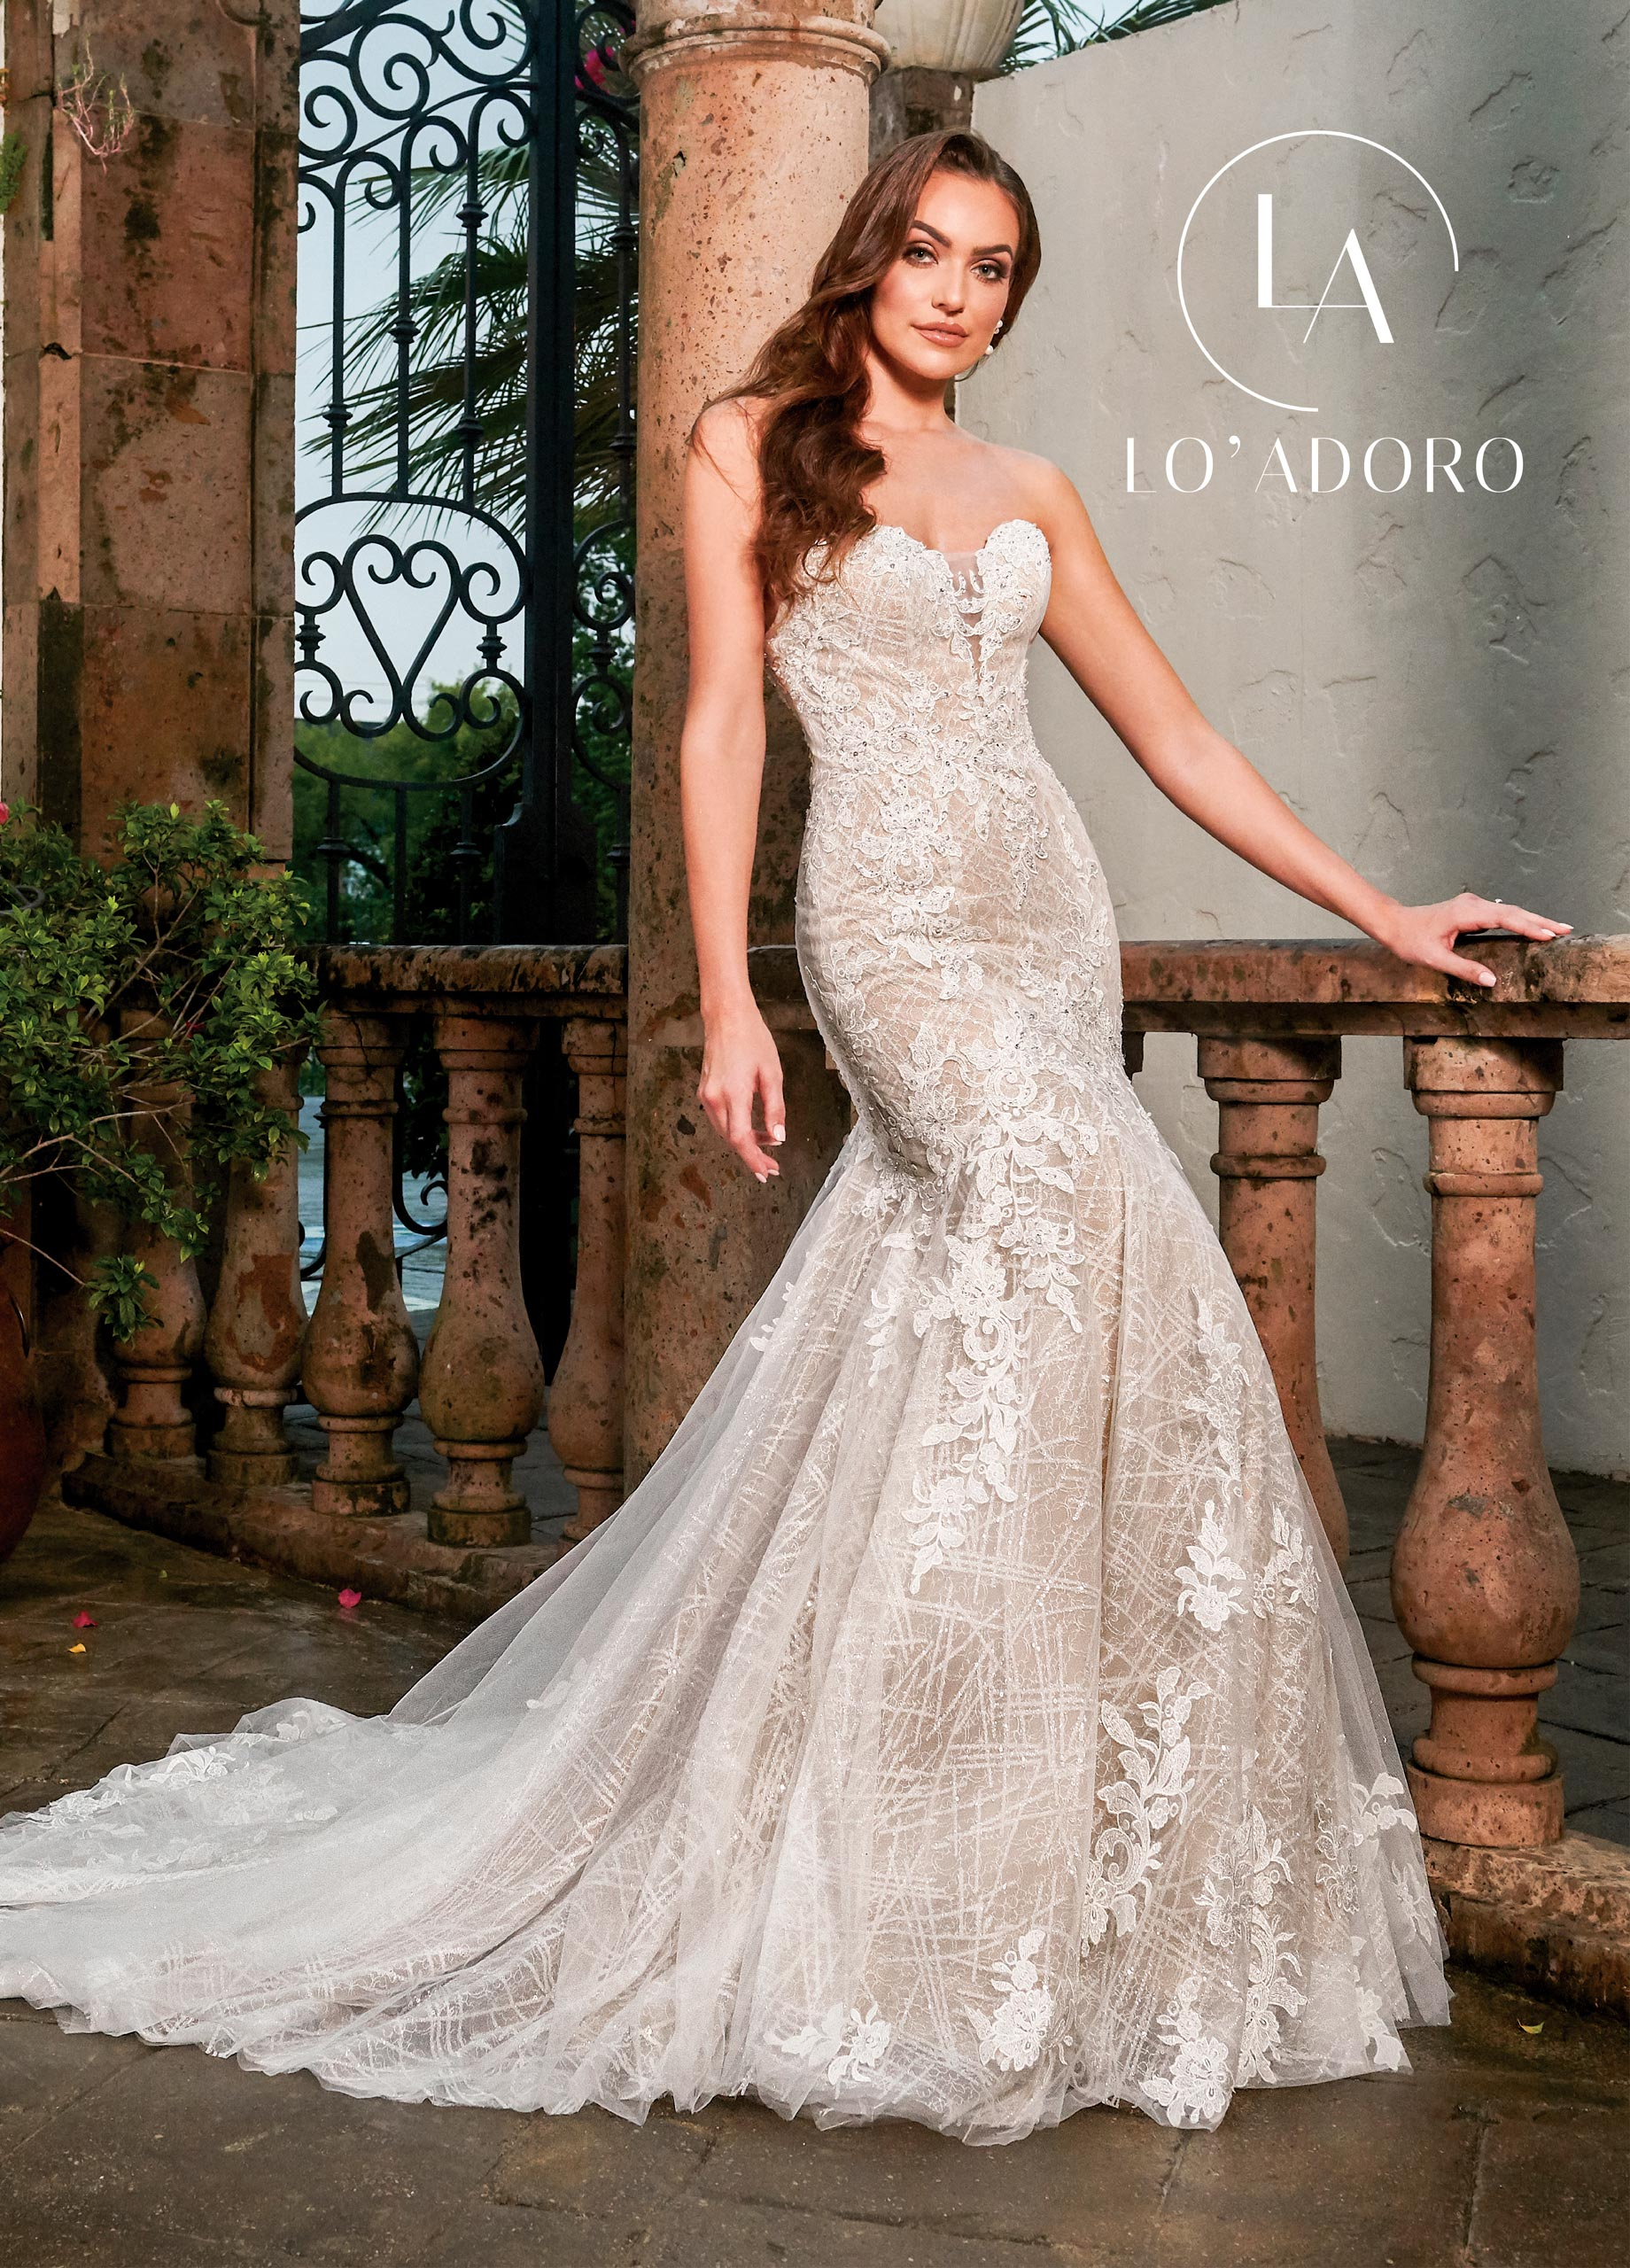 Sweetheart Drop Waist Lo' Adoro Bridal in White Color